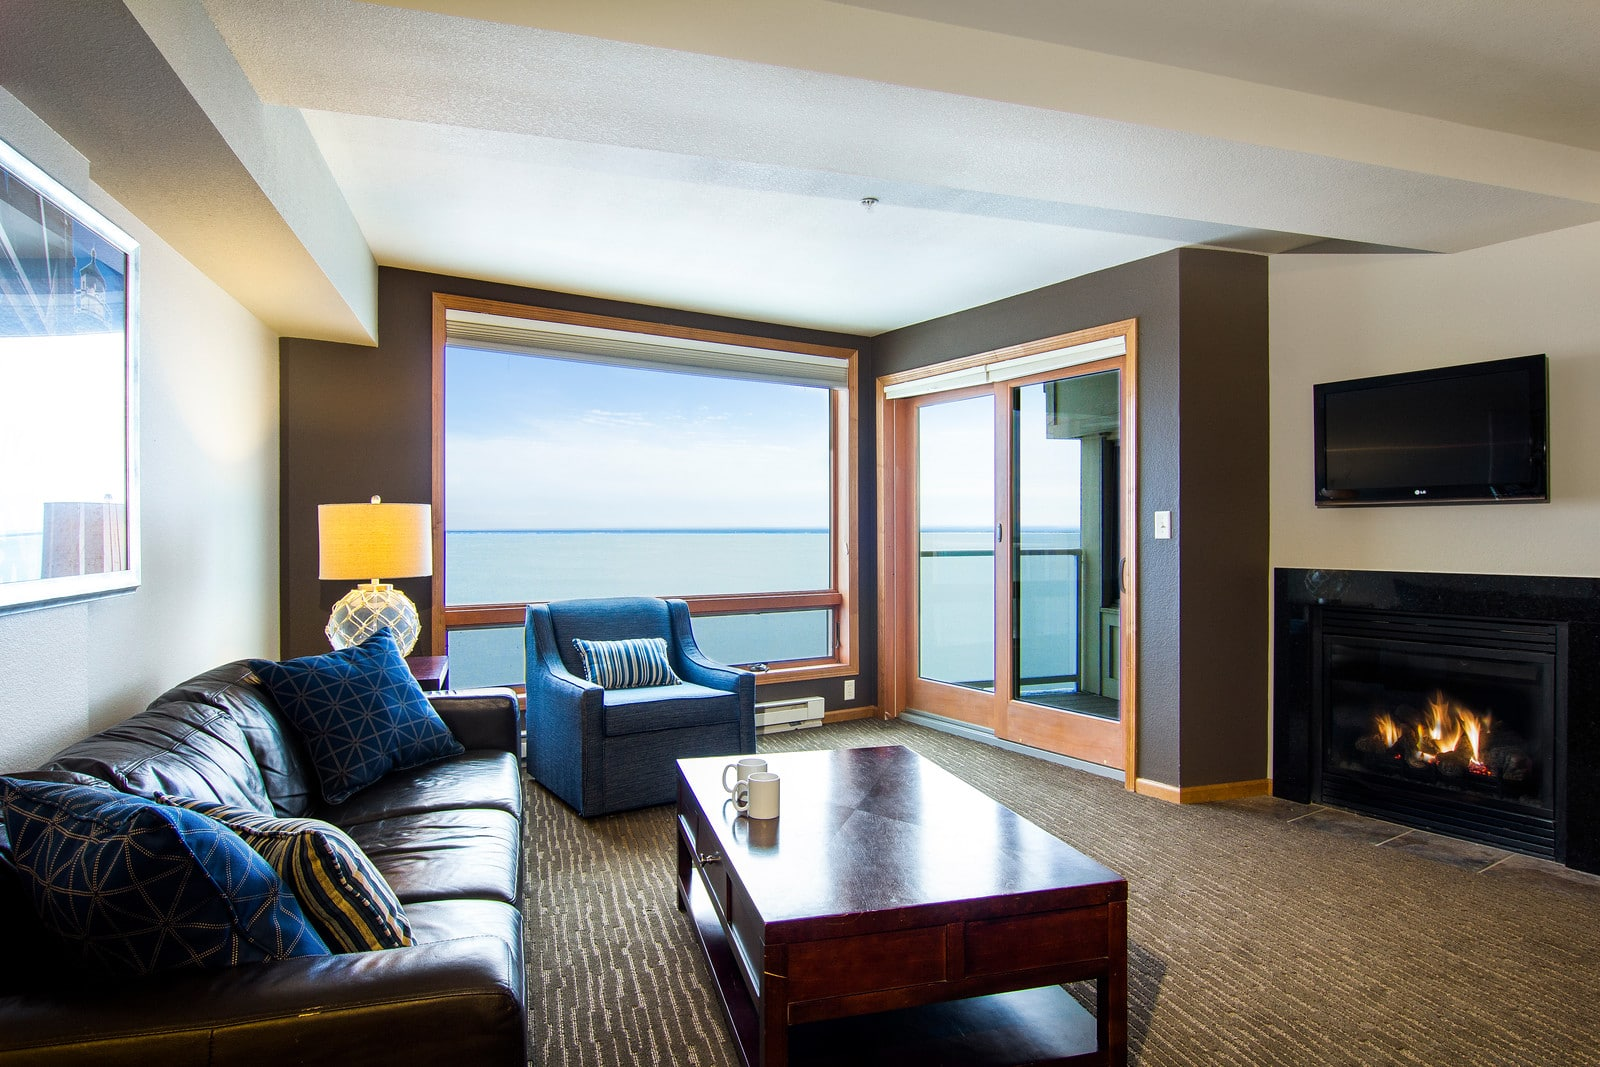 2 Bedroom Condo  Beacon Pointe  Duluth Lakeview Hotel on